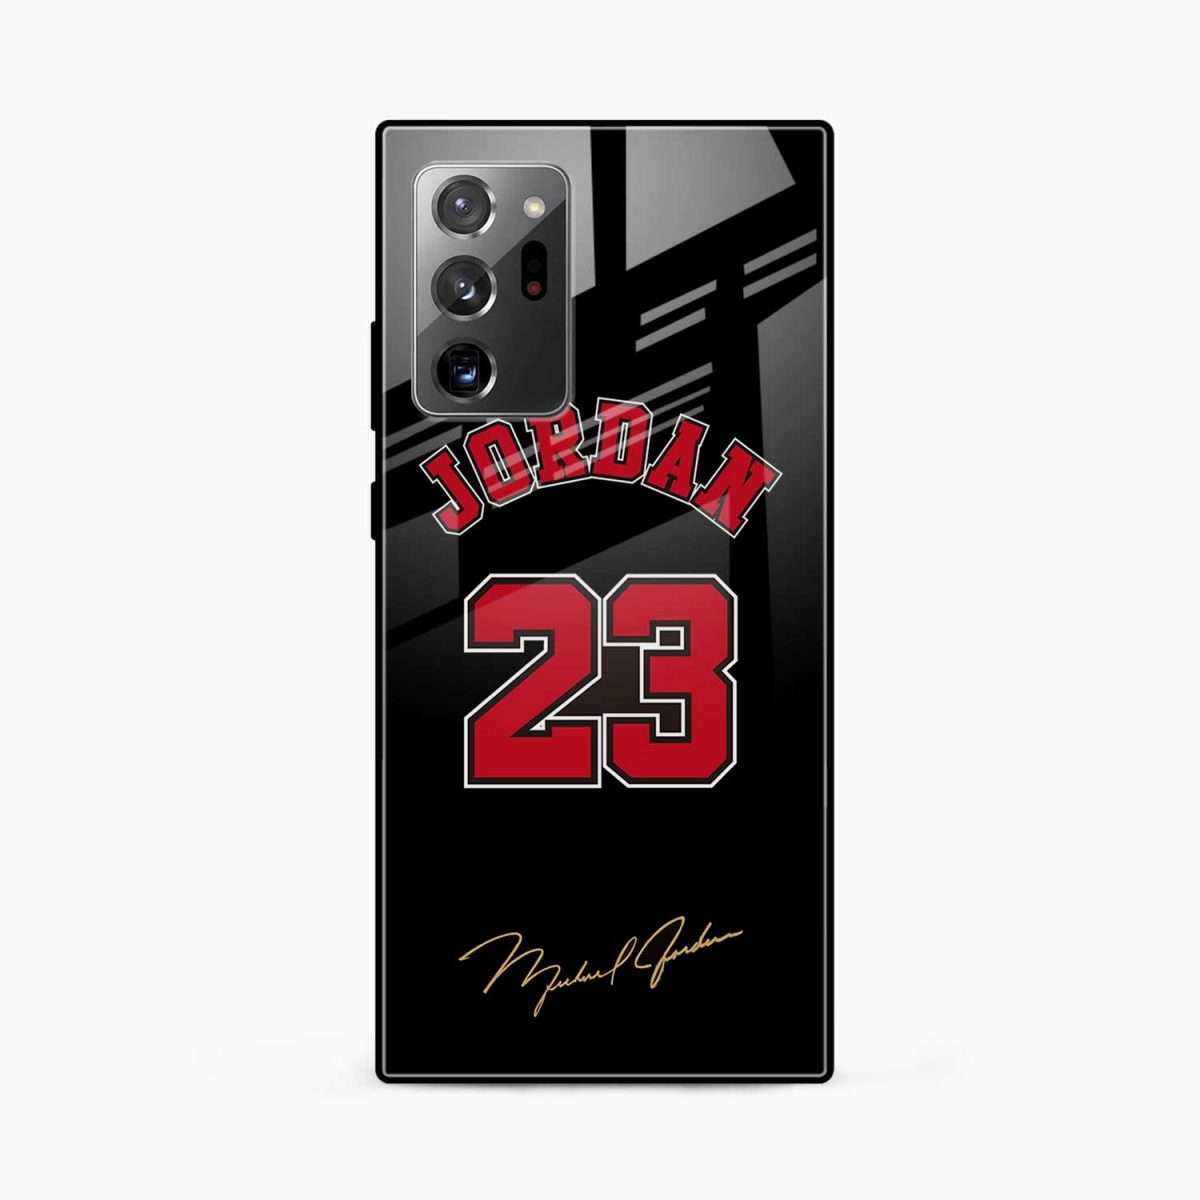 jordan front view samsung galaxy note20 ultra back cover